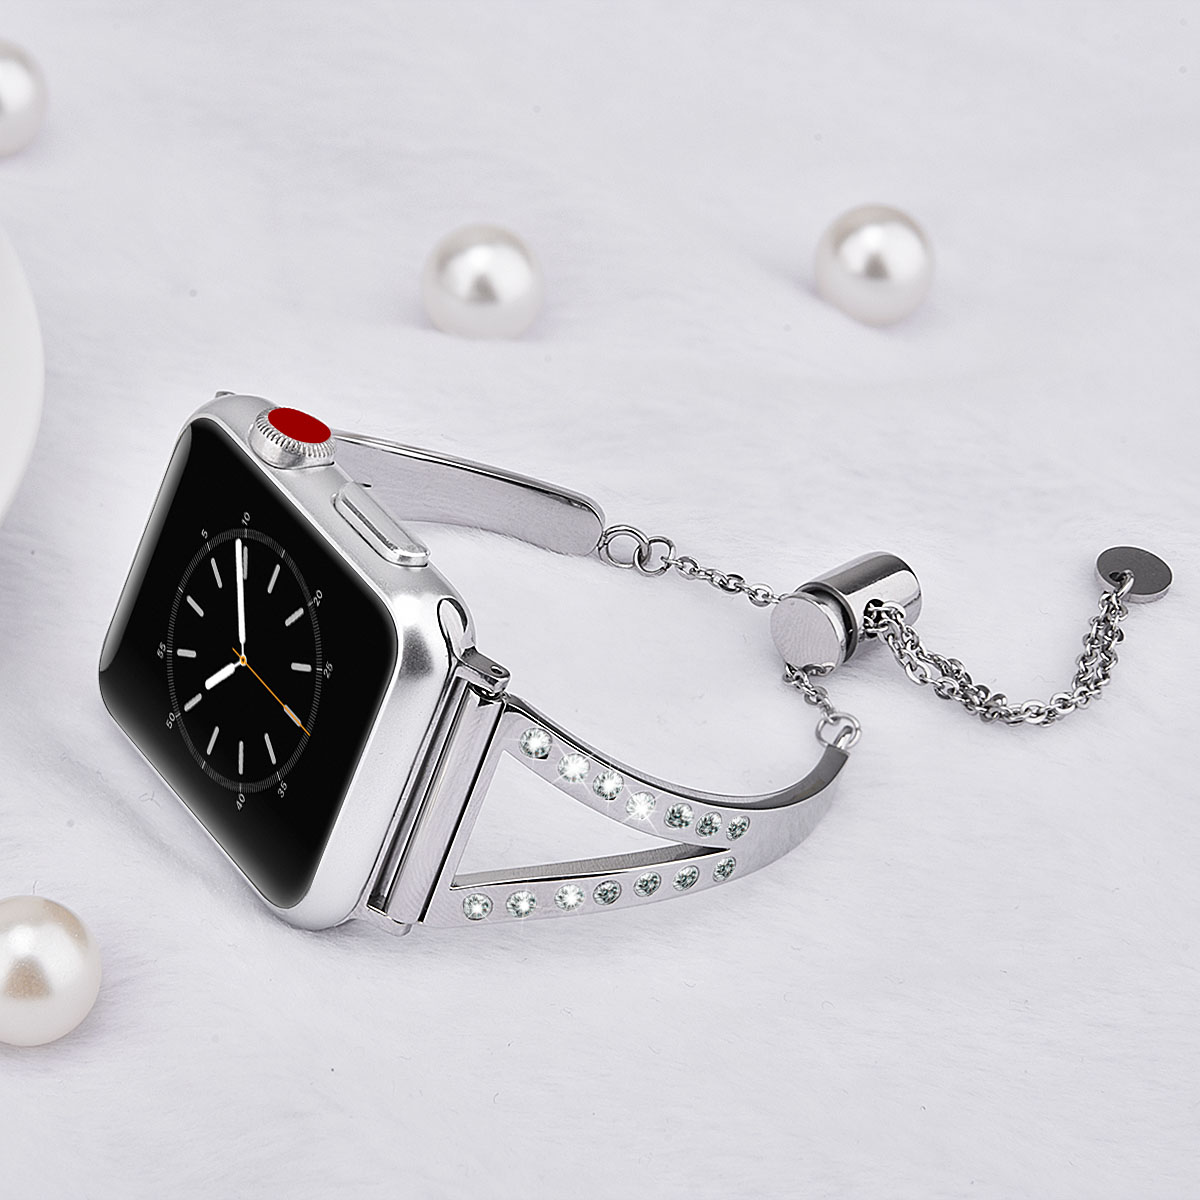 f7b5b0b52 2018 Rhinestones Metal Watch Band For Apple Watch Woman Bracelet, for  iWatch Band